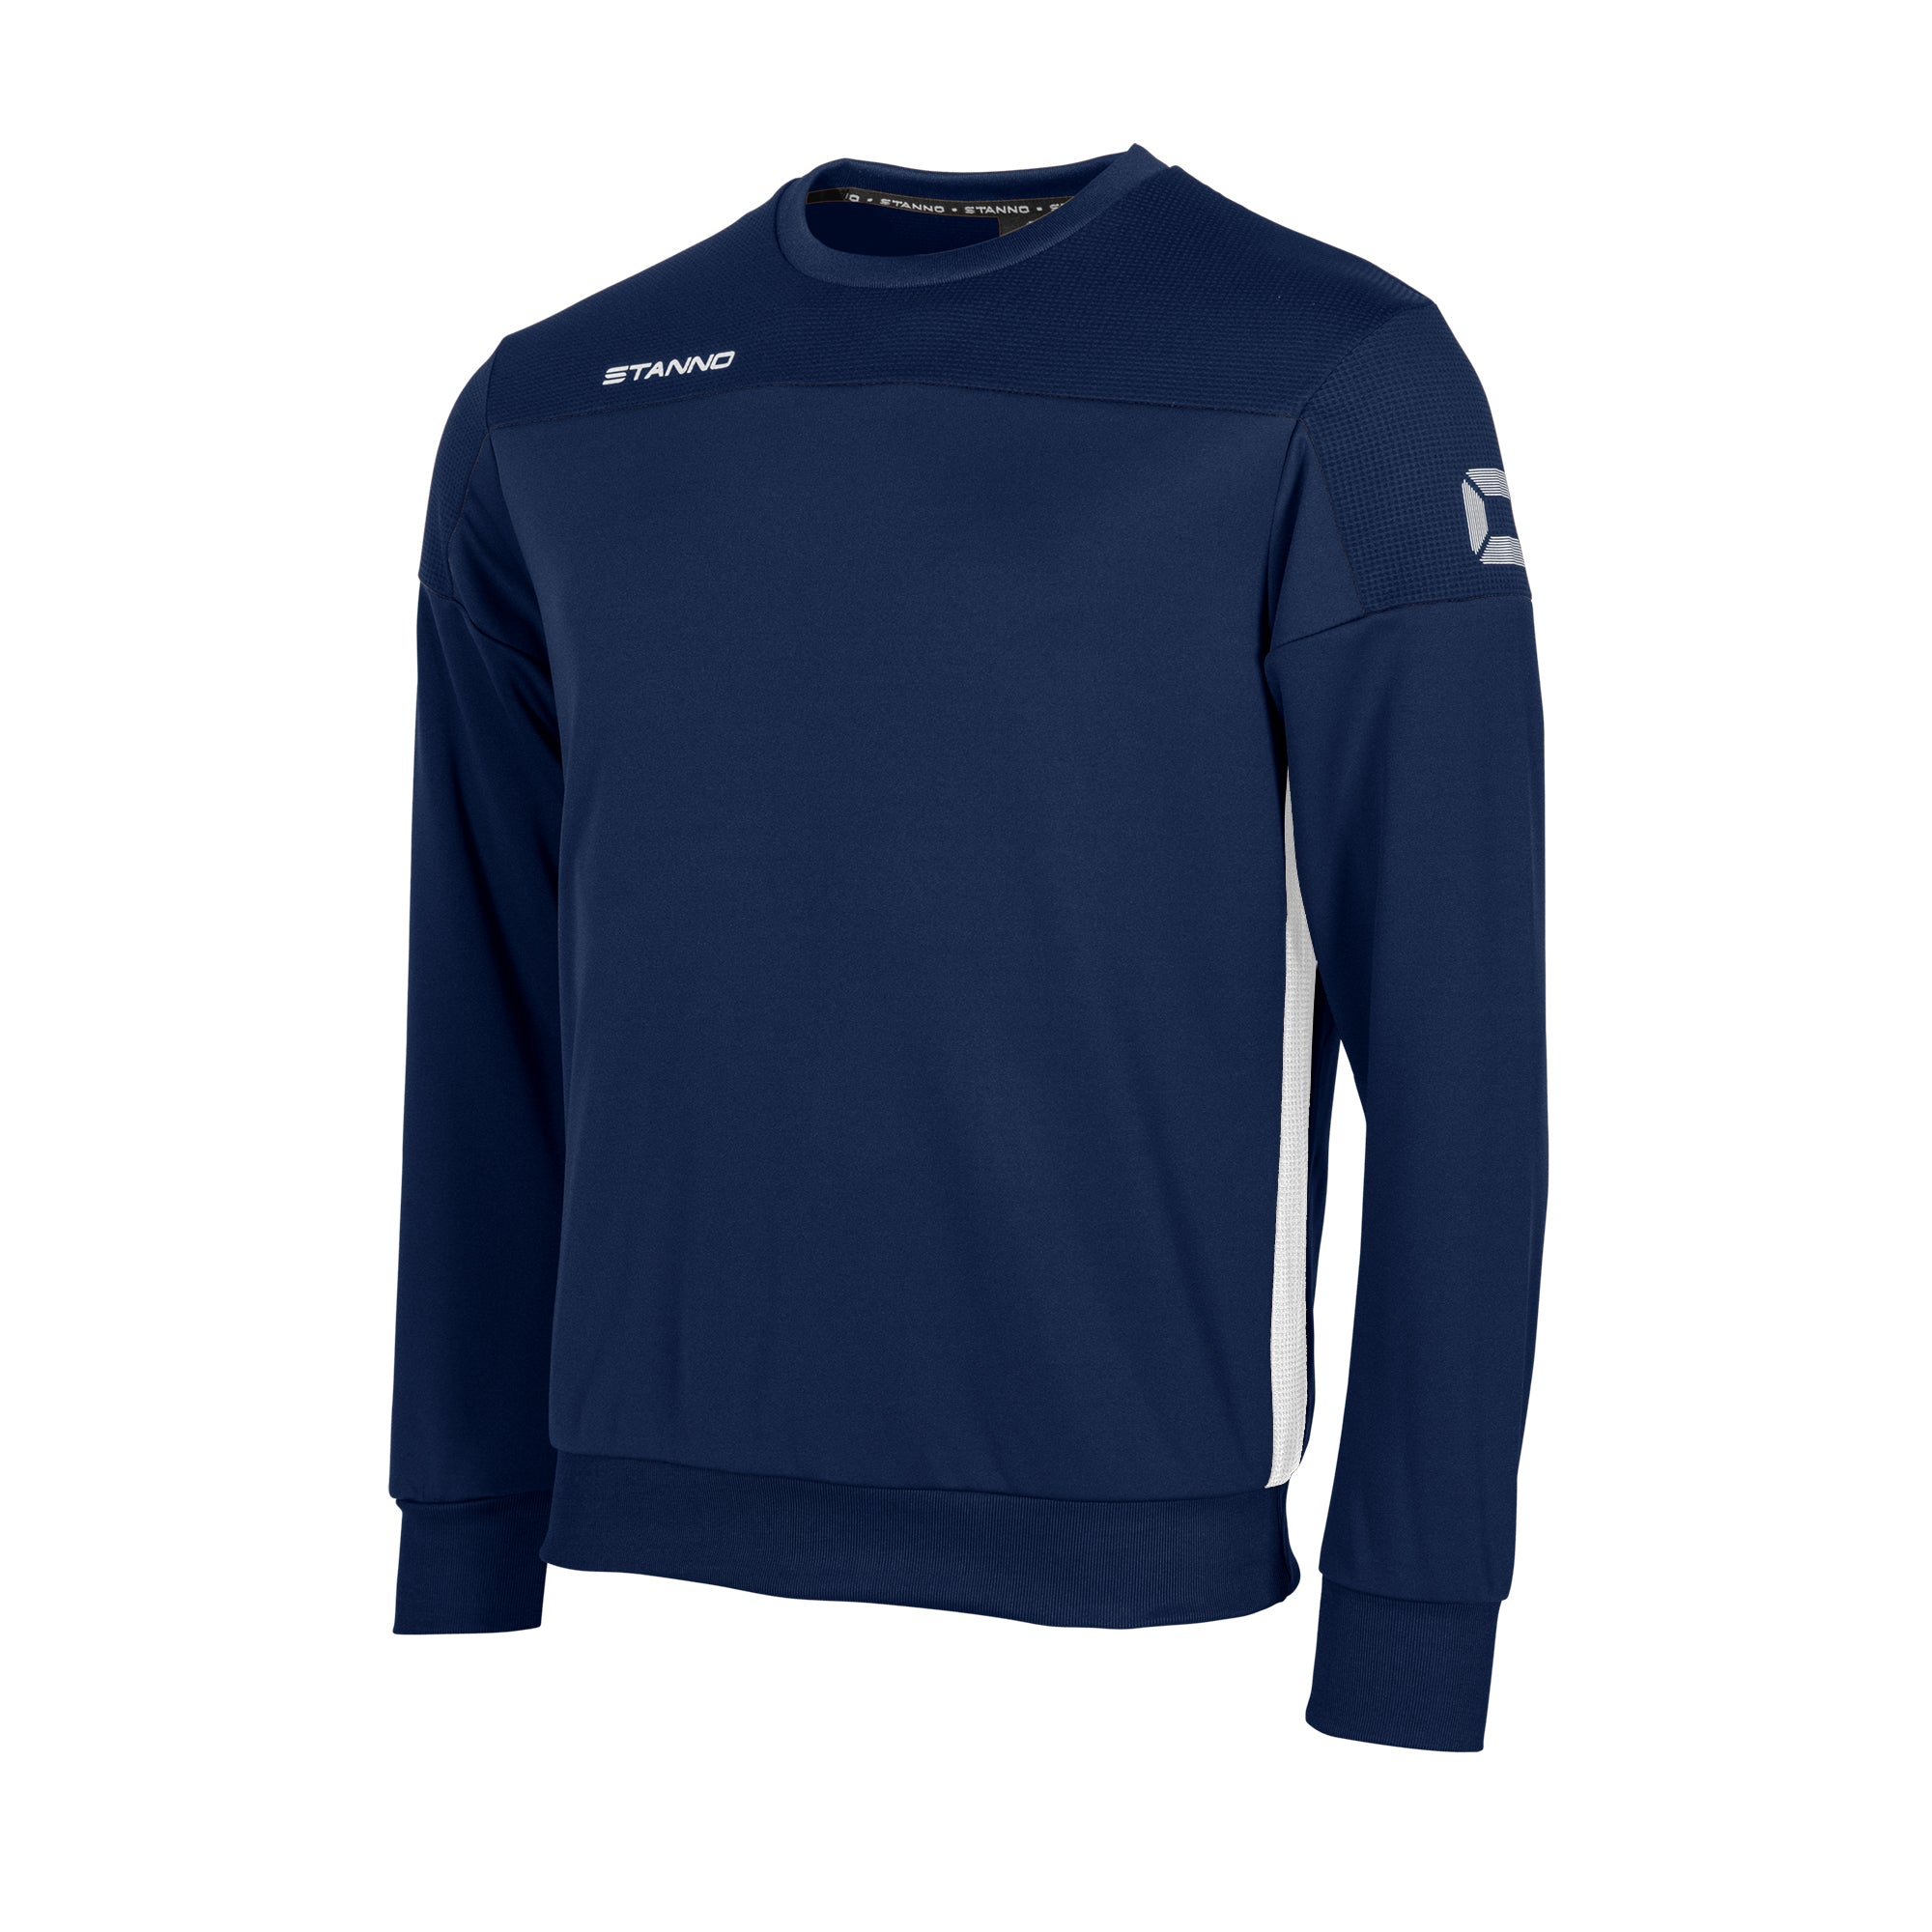 Stanno Pride round neck sweatshirt in navy, with mesh shoulder and contrast white side panel